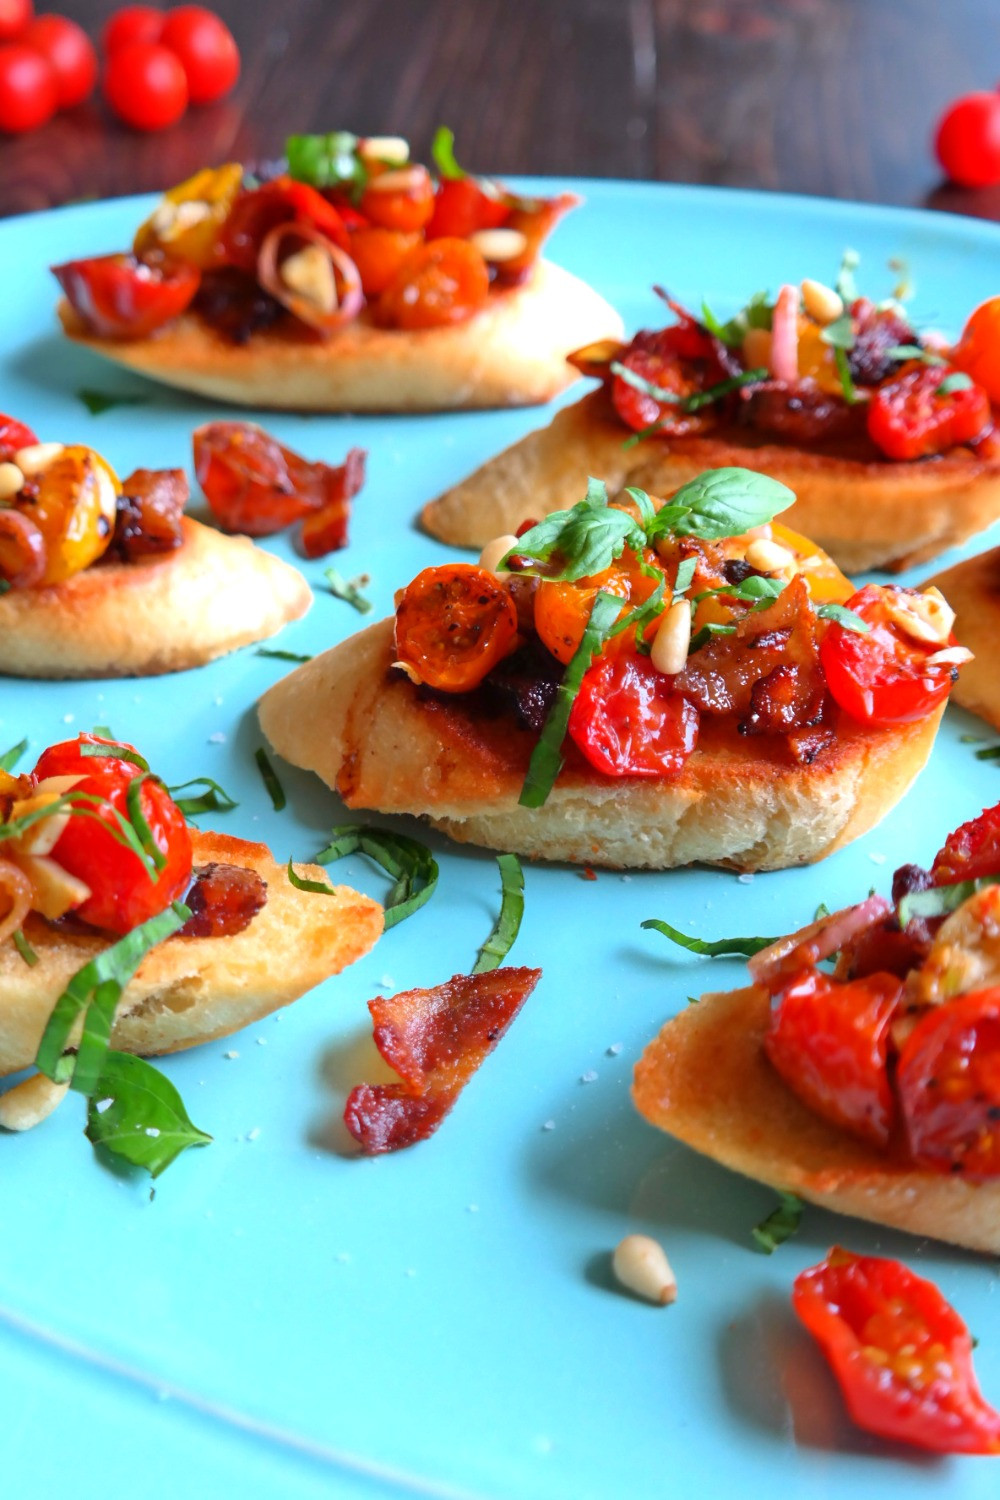 Roasted Tomato & Candied Bacon Bruschetta | eatlovegarlic.com @eatlovegarlic